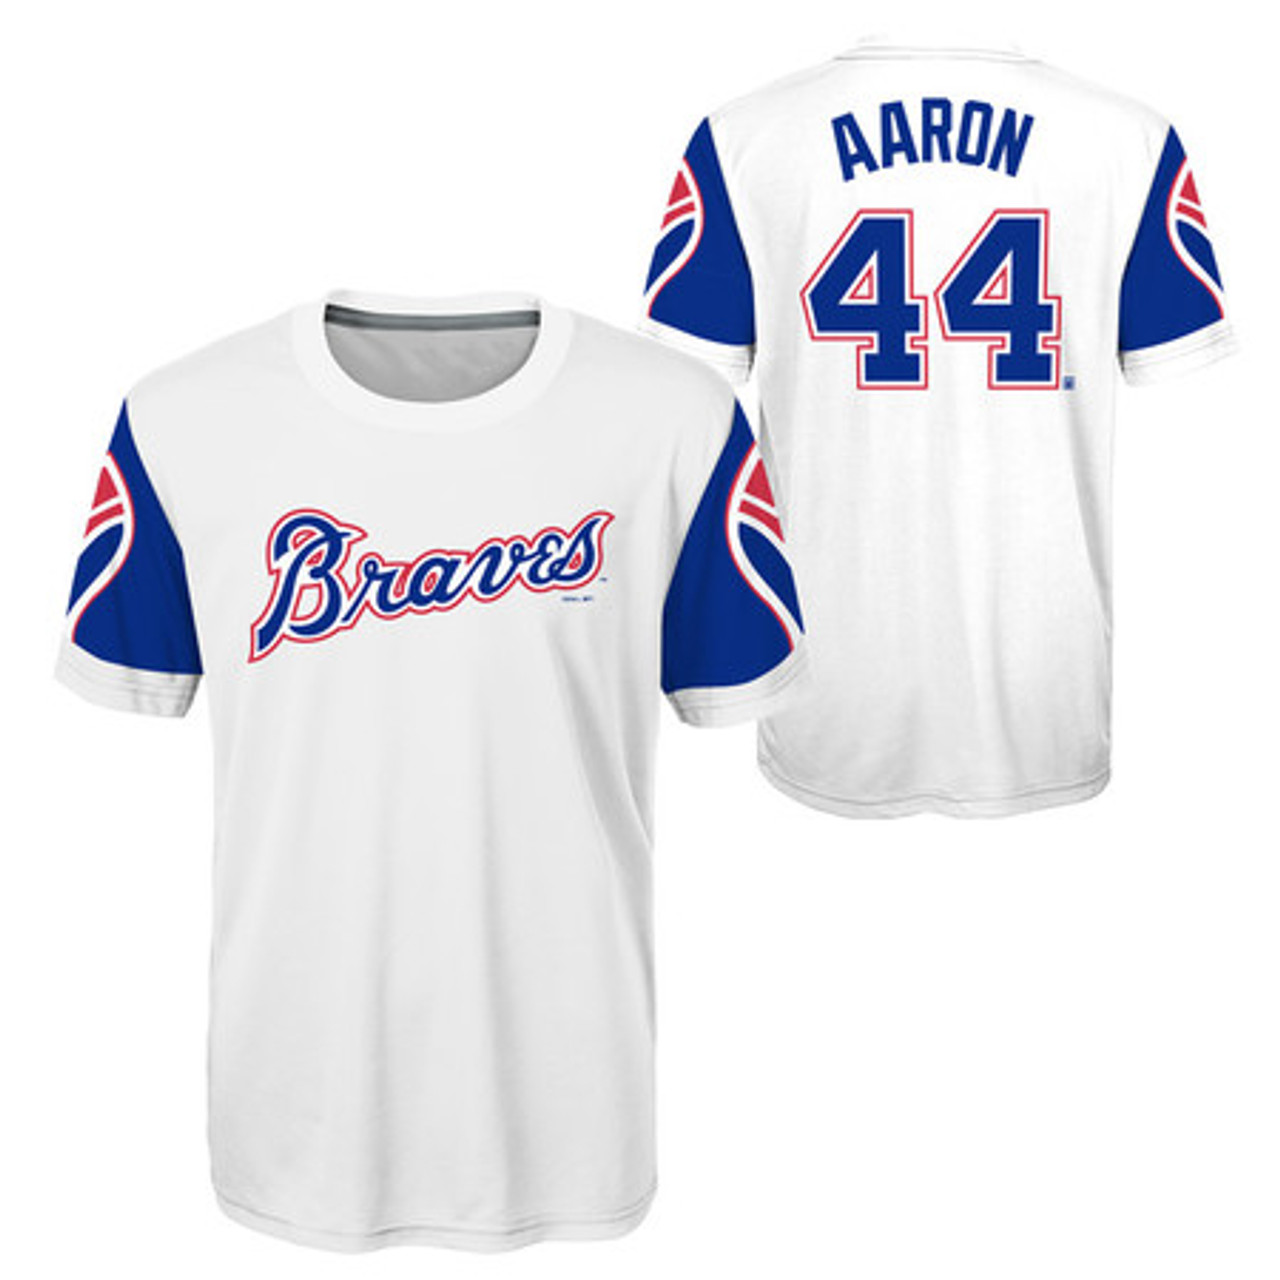 Youth Hank Aaron Atlanta Braves Cooperstown Collection Jersey Top